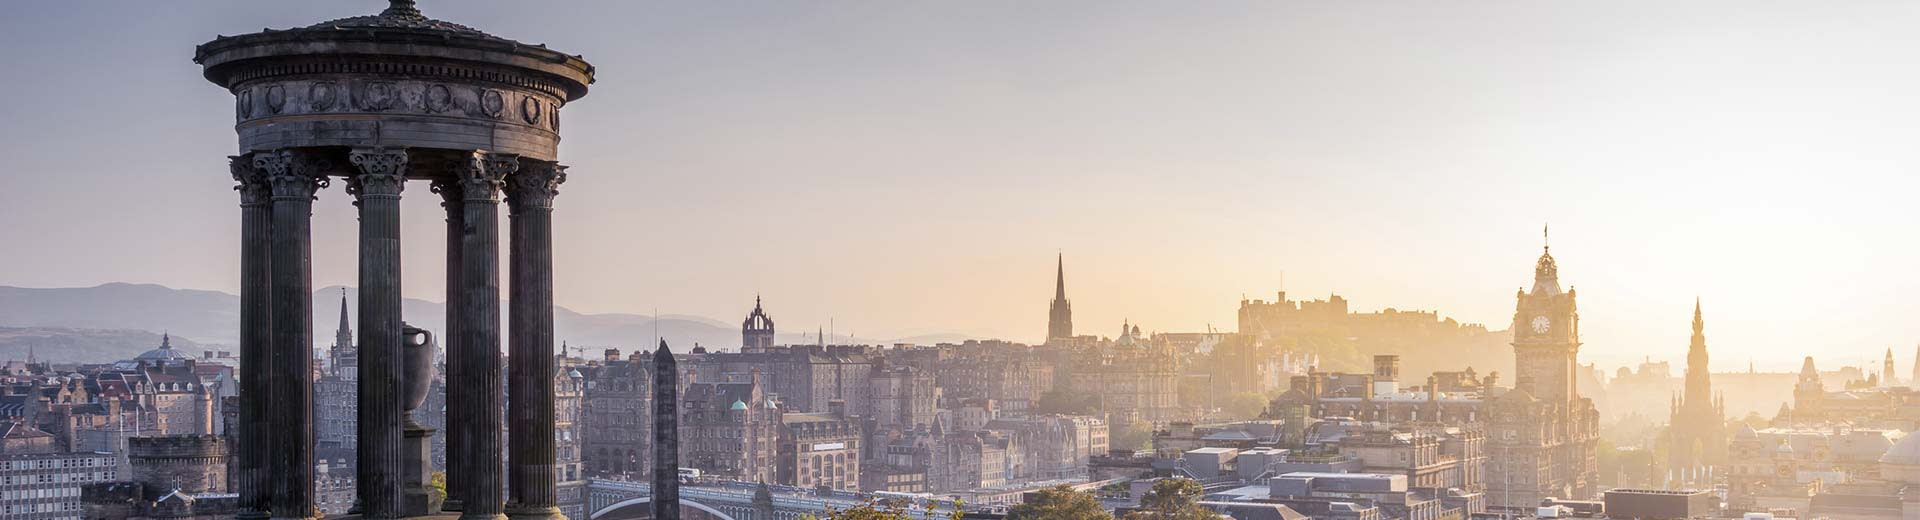 The sun pierces the sky over the skyline of Edinburgh